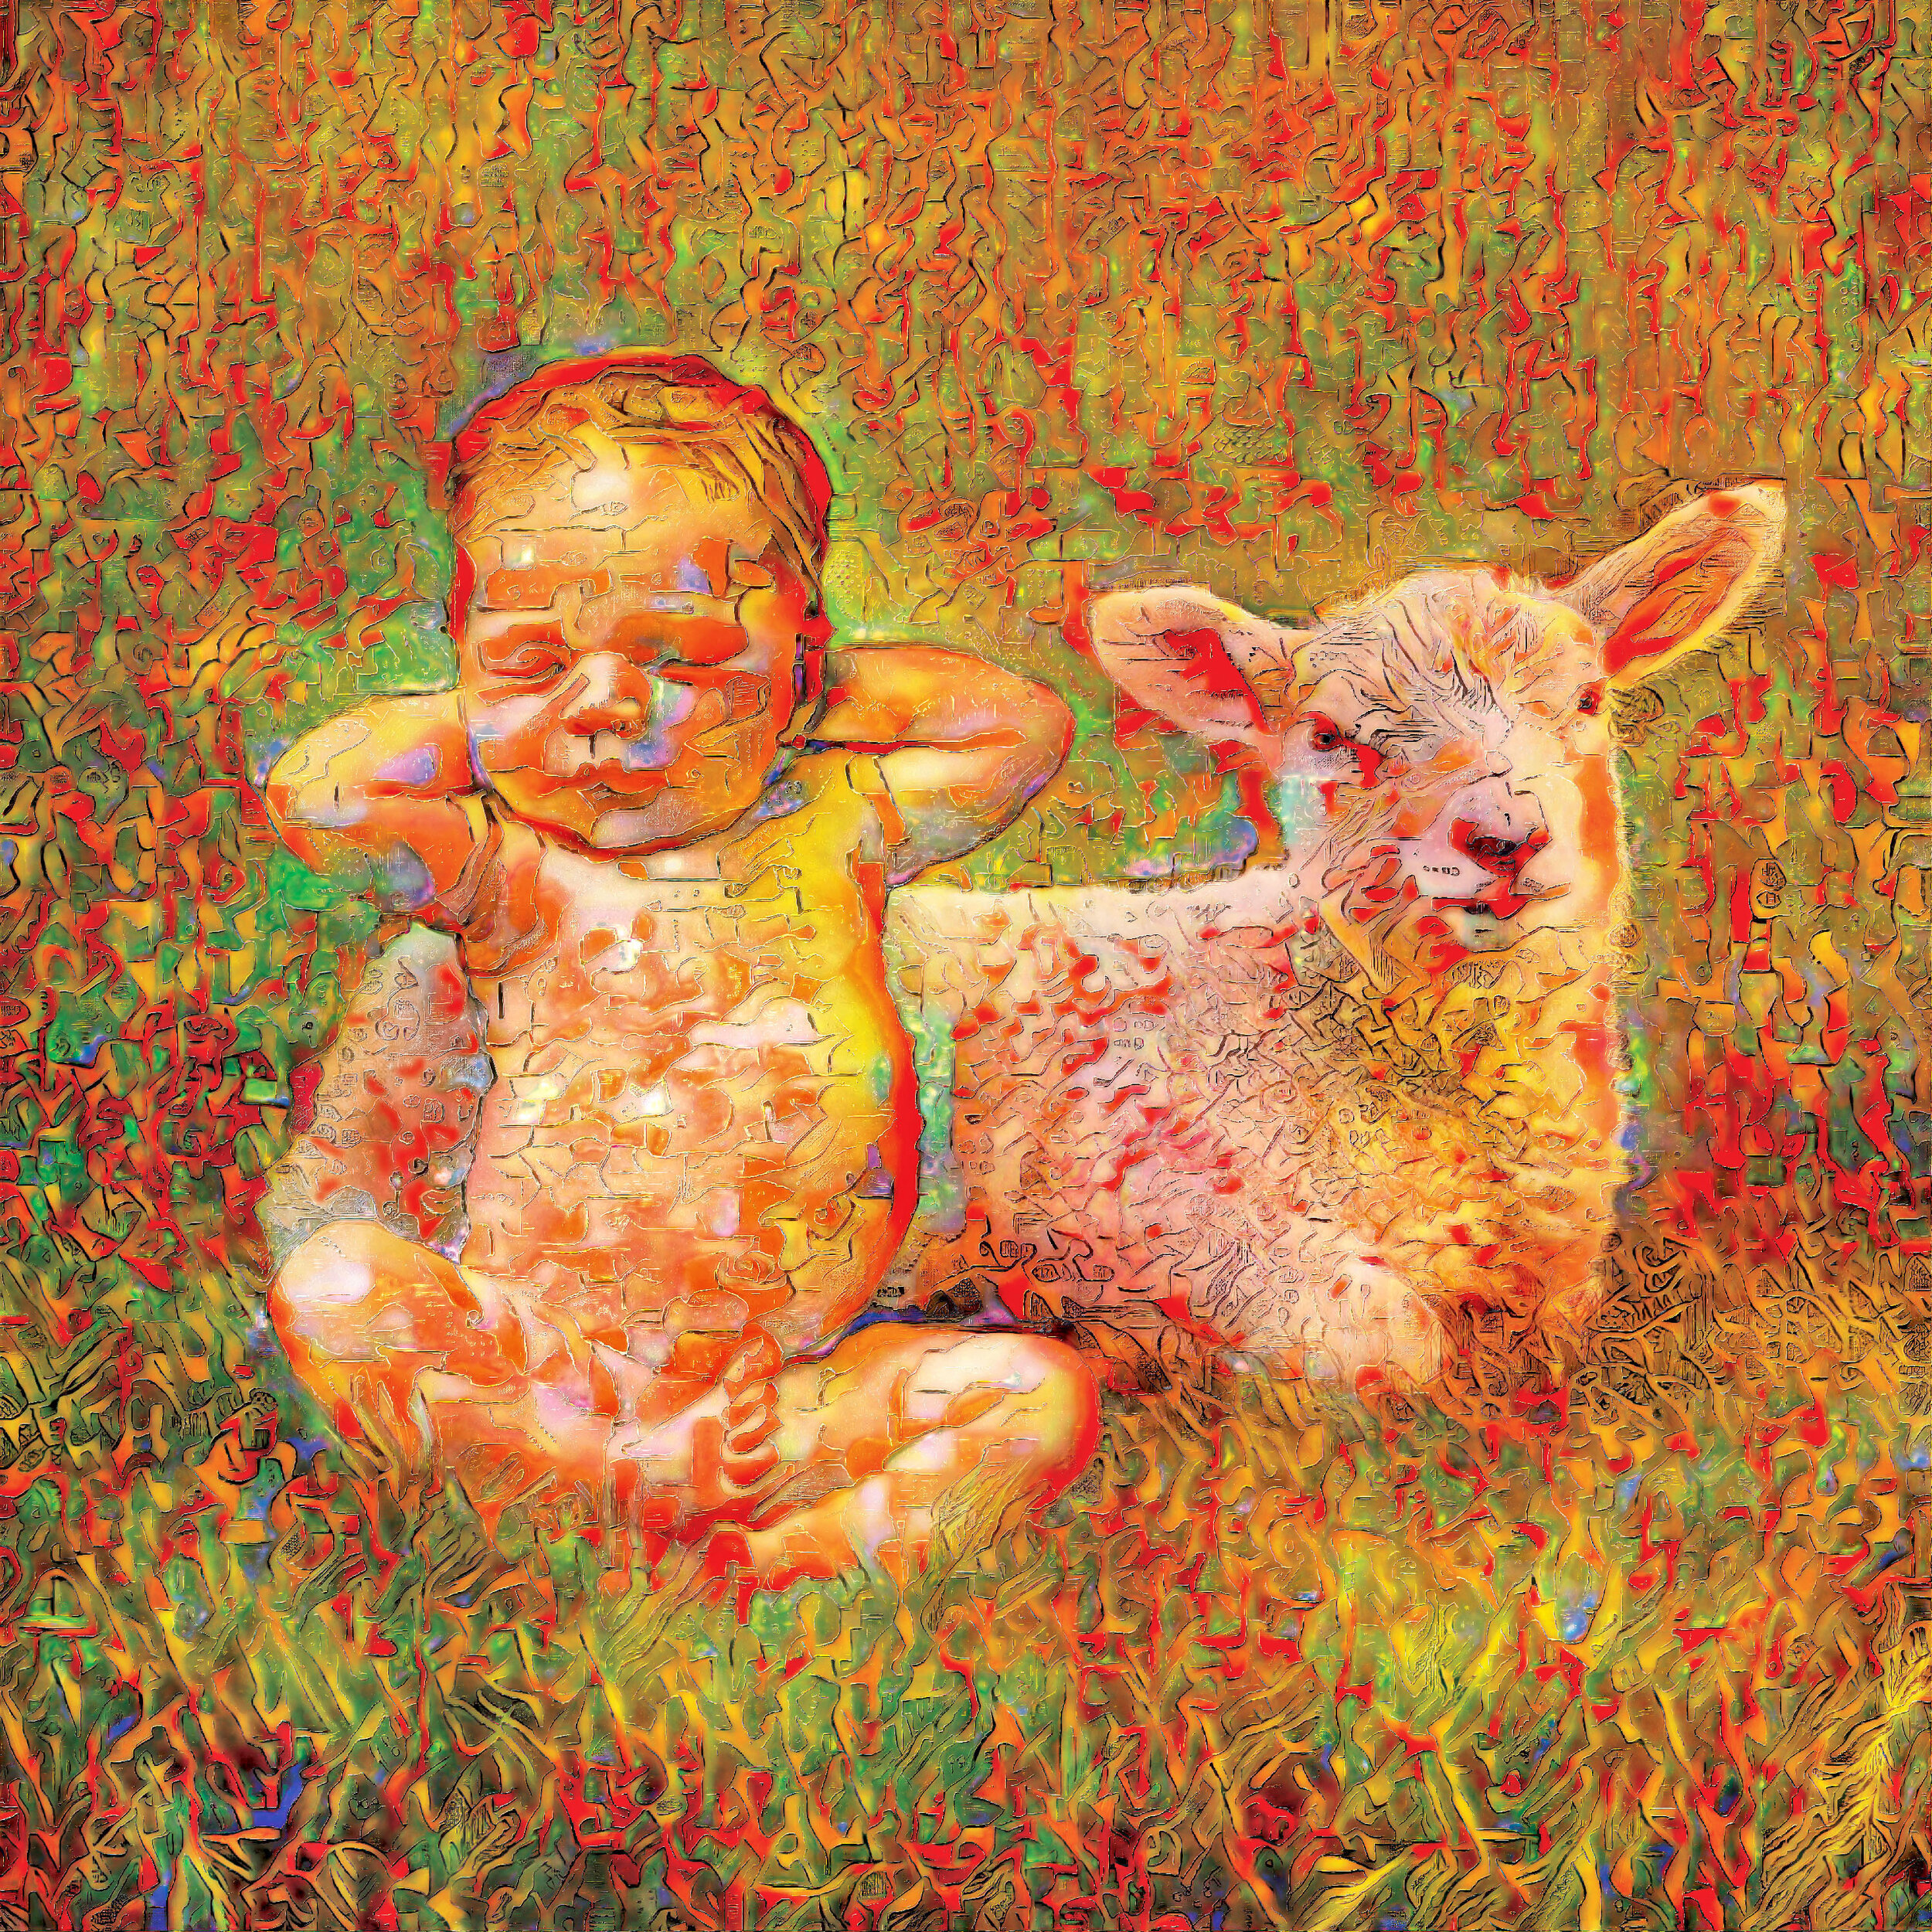 Kid and Lamb in a Field